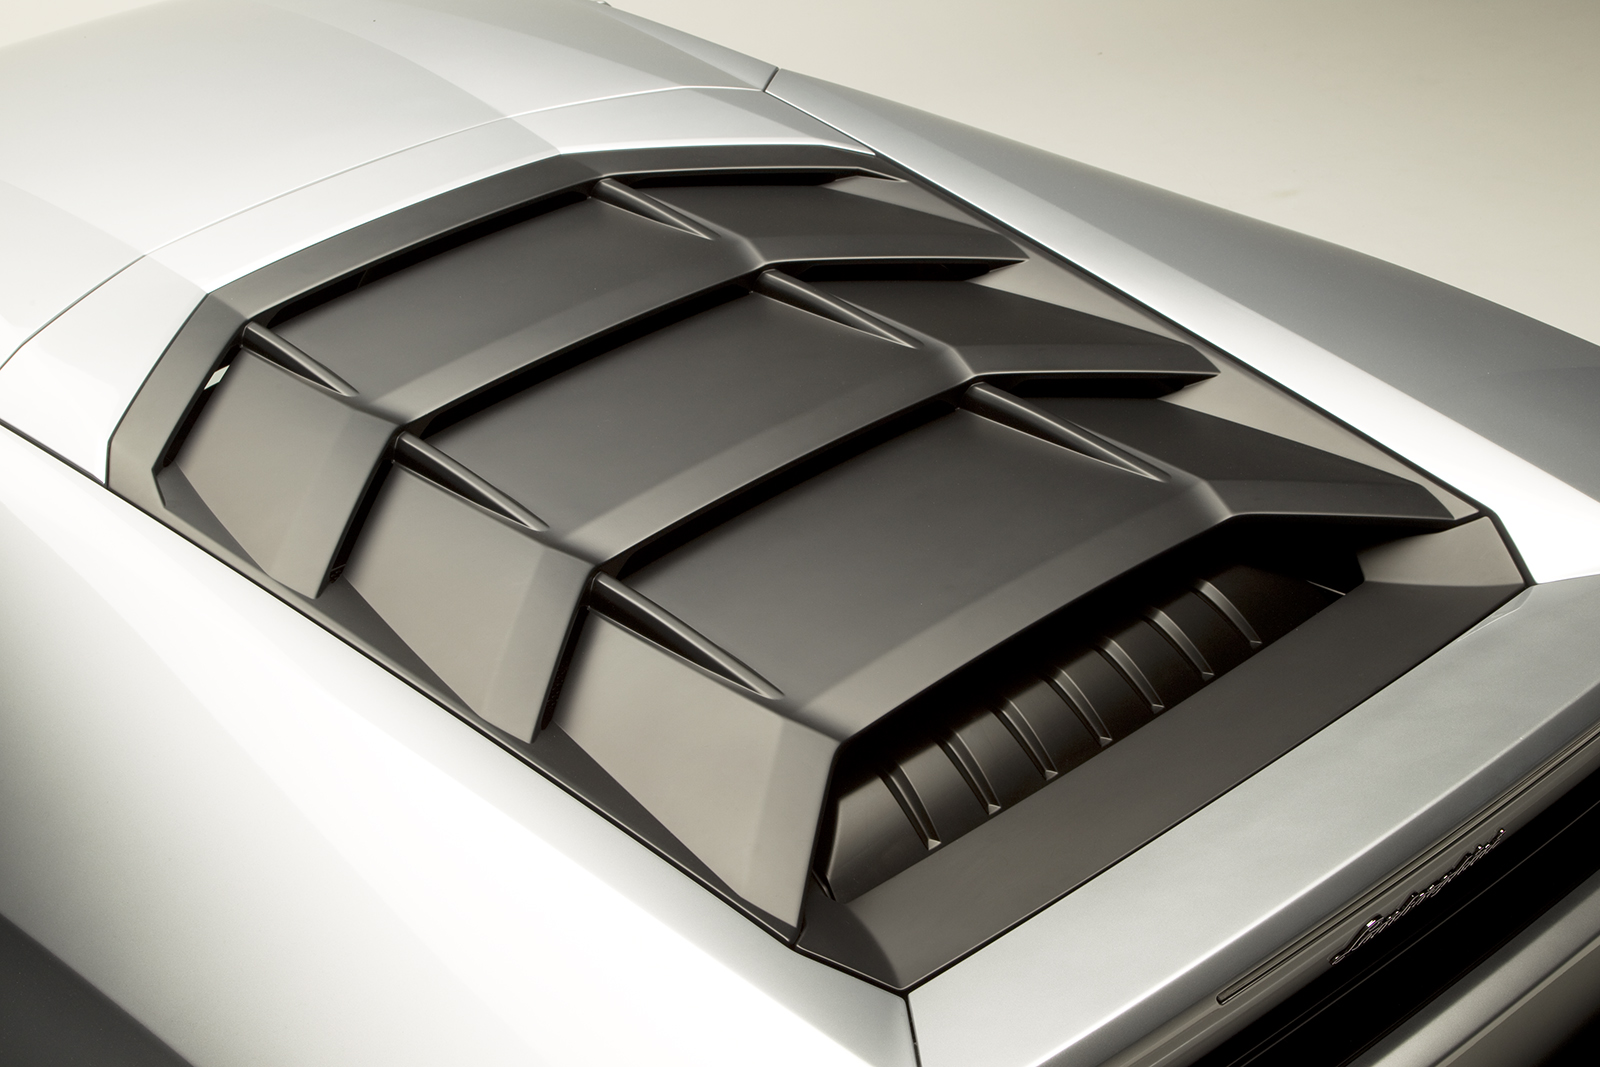 Lamborghini Huracan rear engine cover